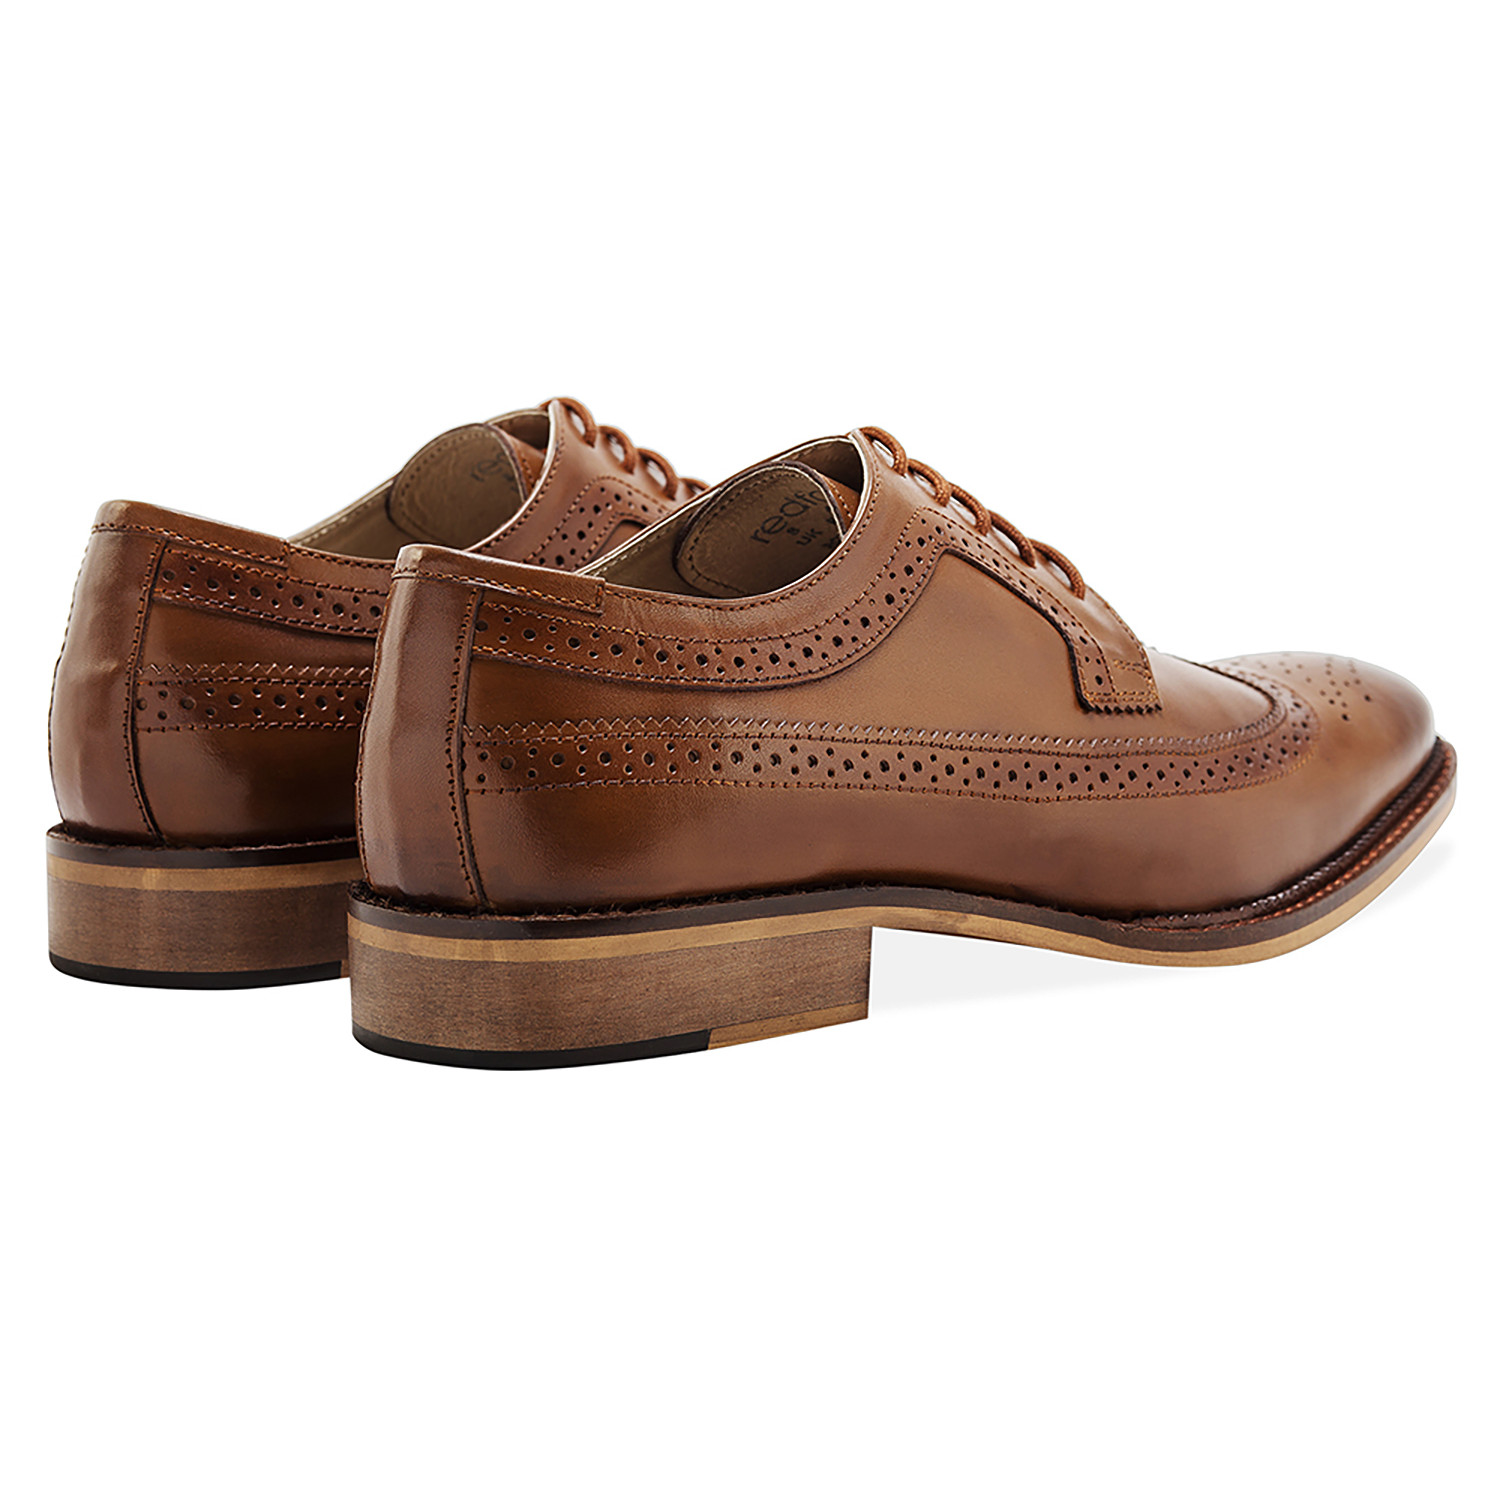 Redfoot Shoes Price